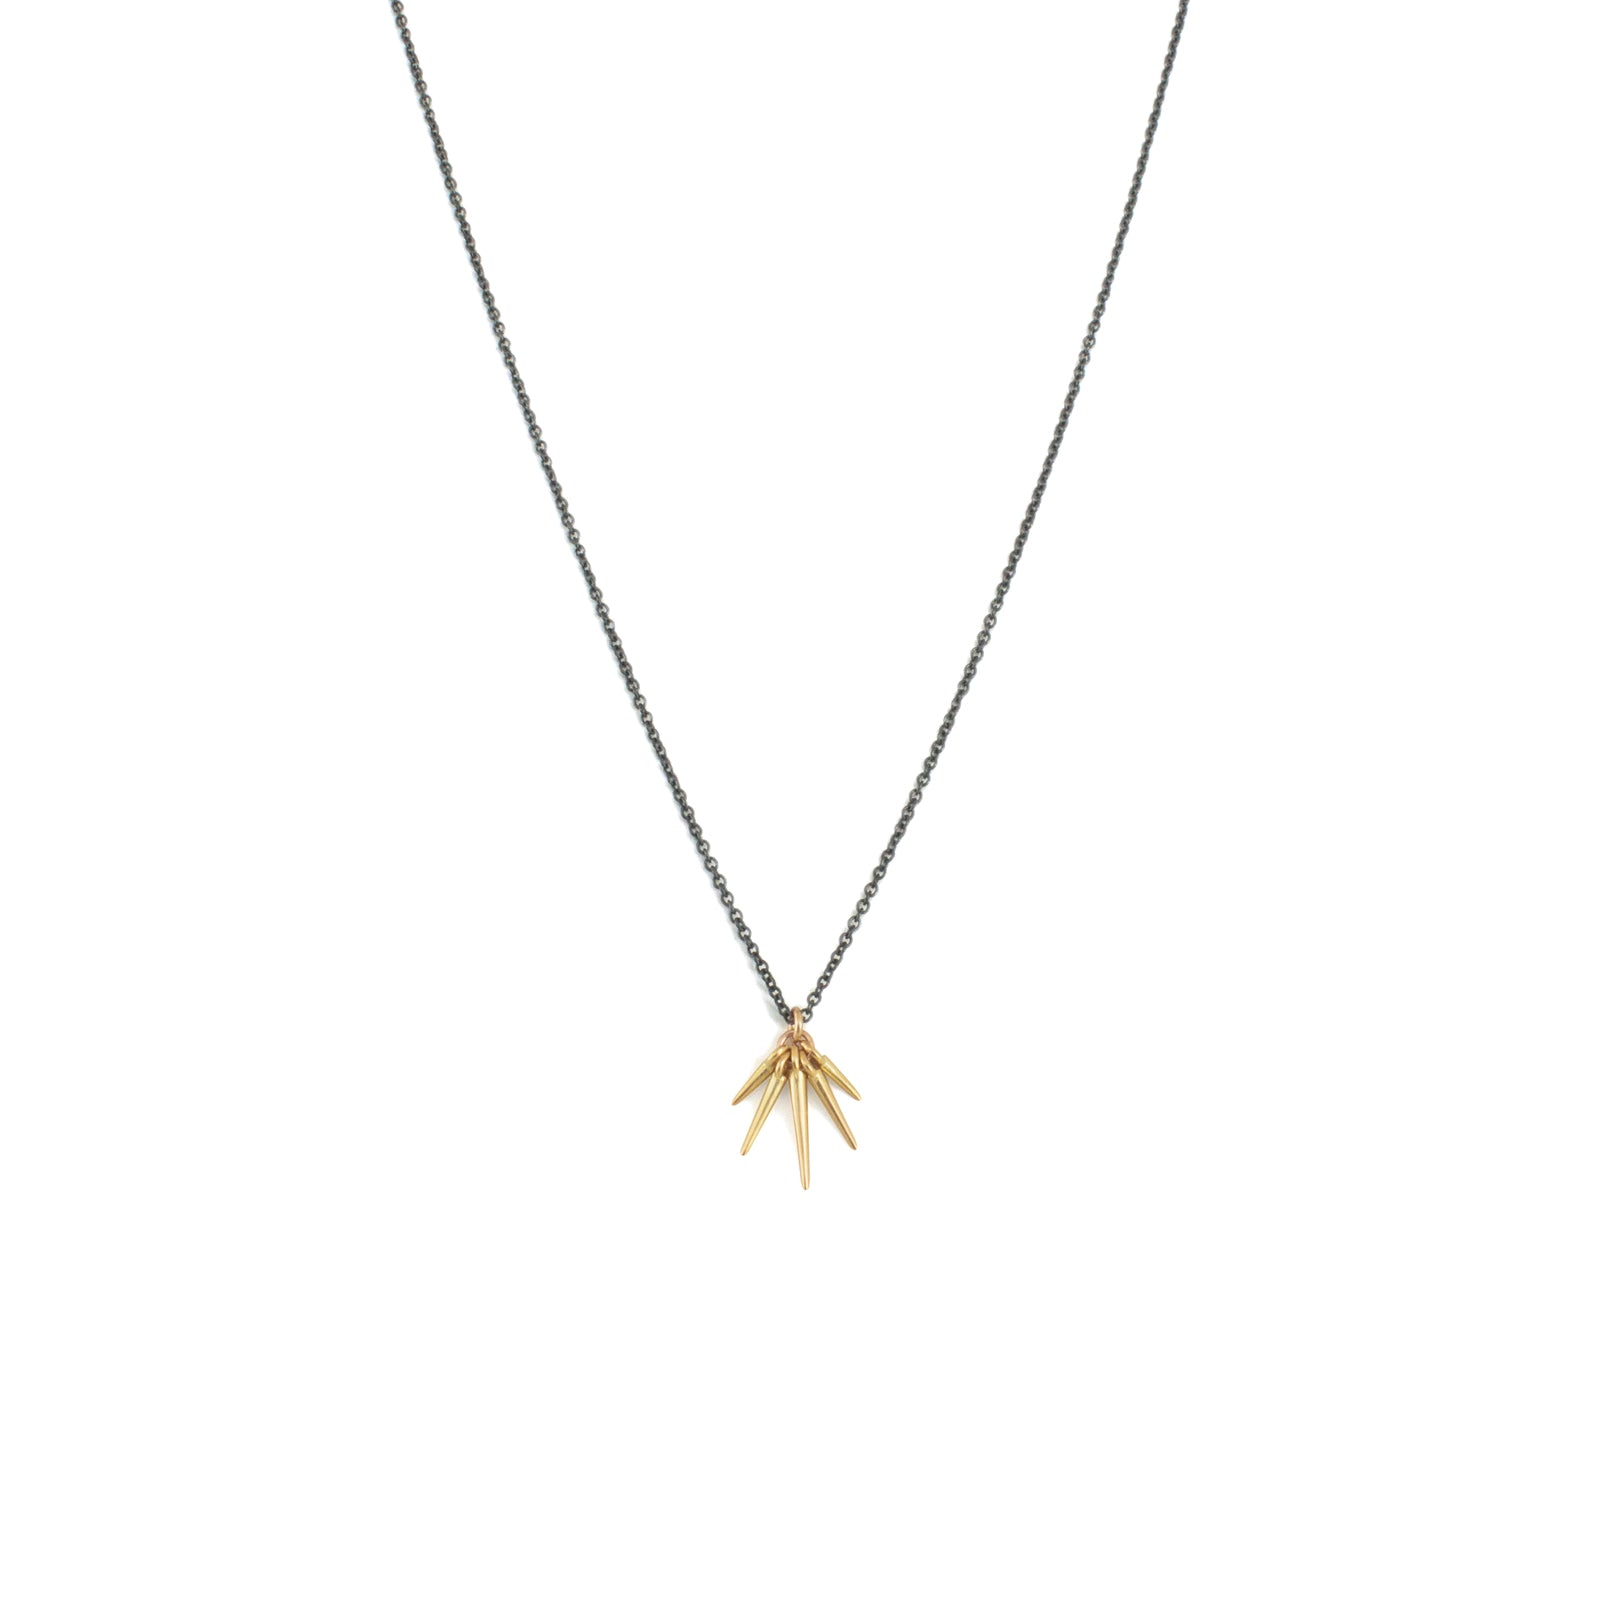 18k yellow gold/oxidized silver chain / small fan points necklace